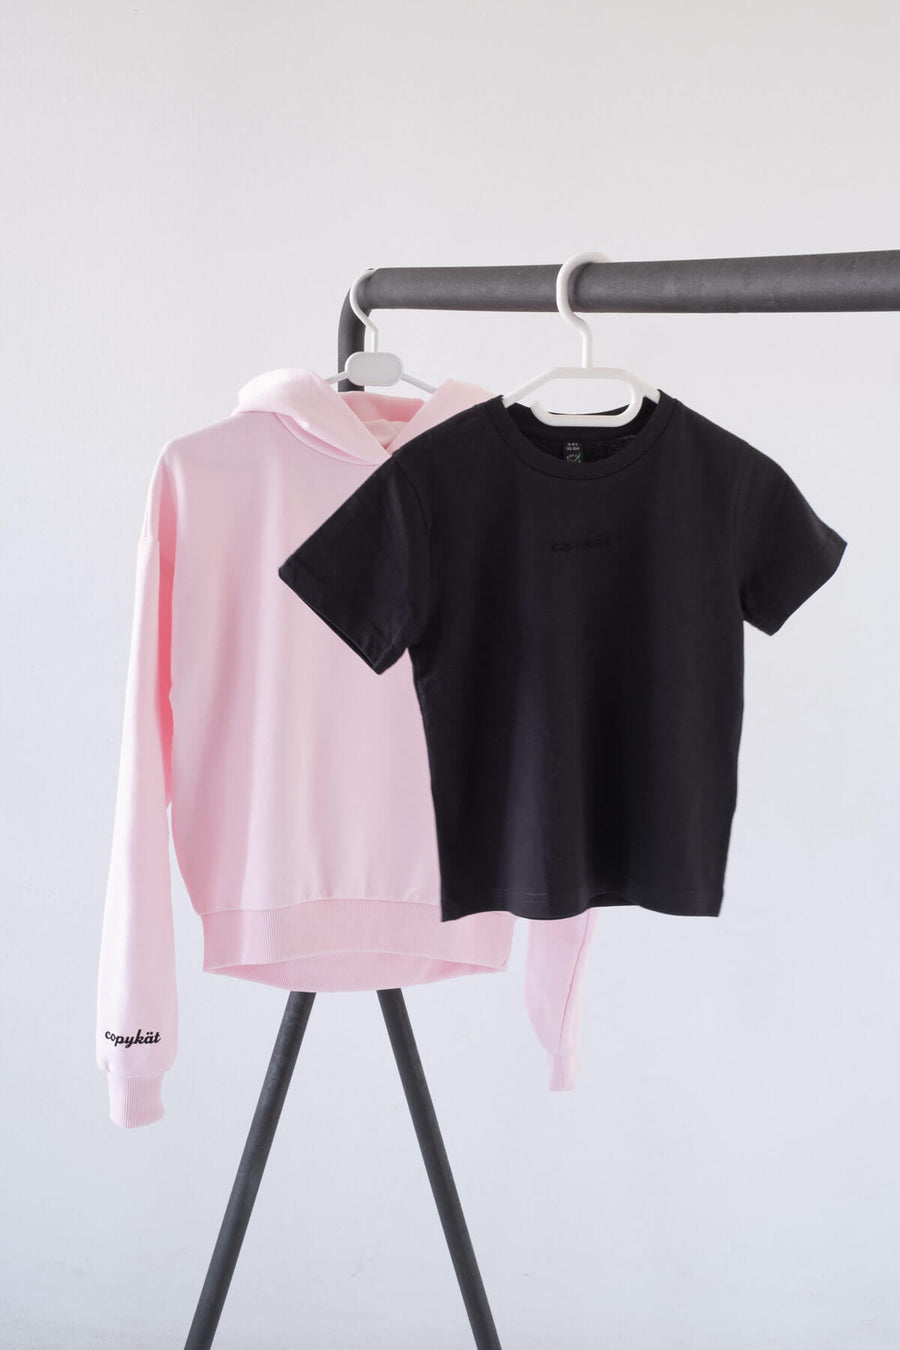 KÄT COPYKÄT cropped hoodie in light pink and junior t-shirt in black